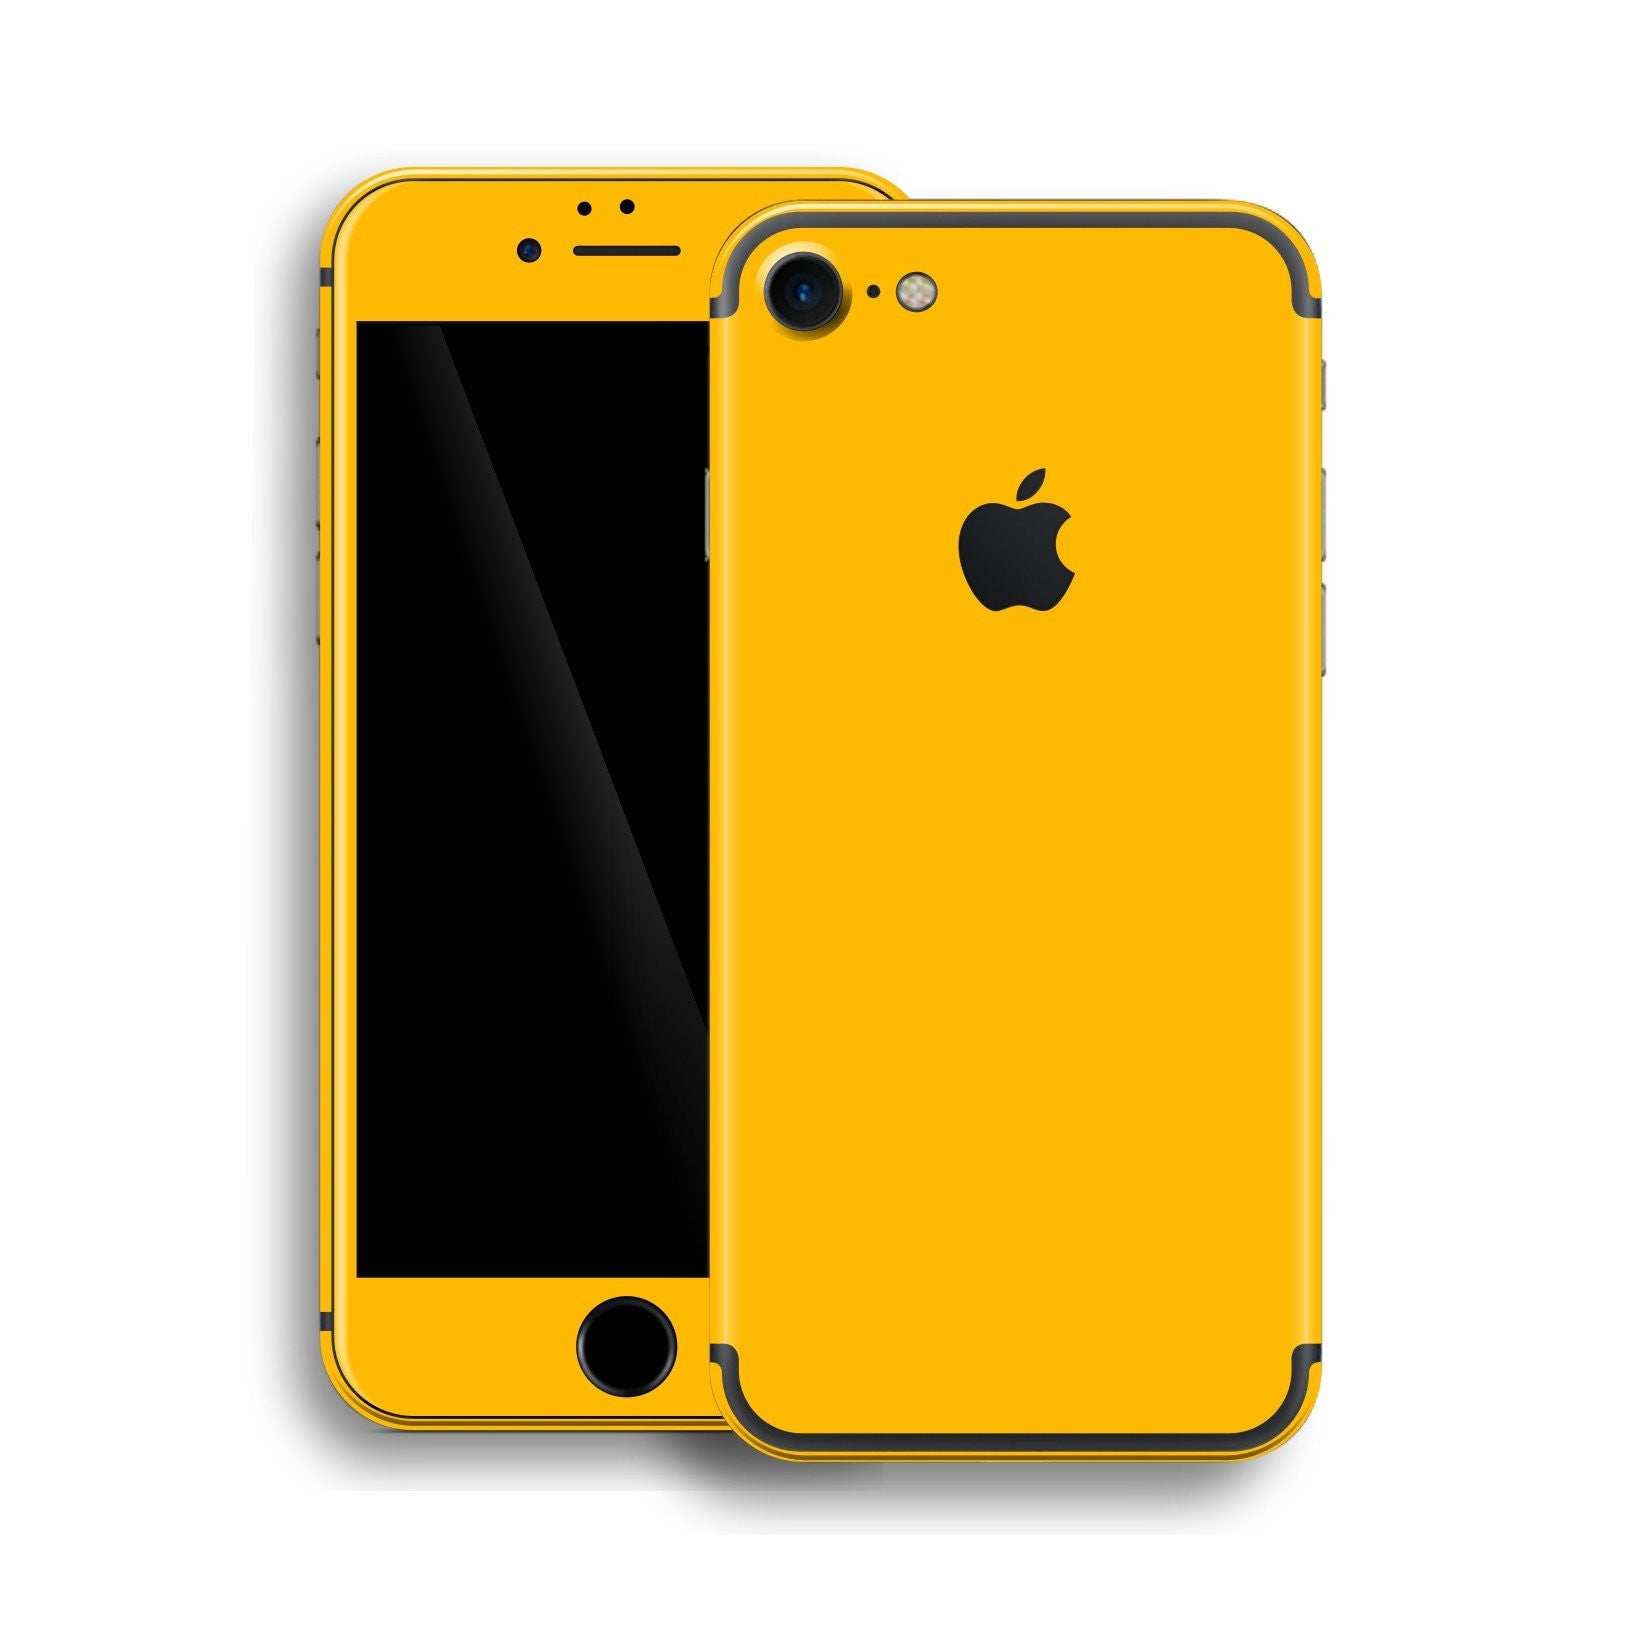 iPhone 7 Glossy Golden Yellow Skin, Wrap, Decal, Protector, Cover by EasySkinz | EasySkinz.com